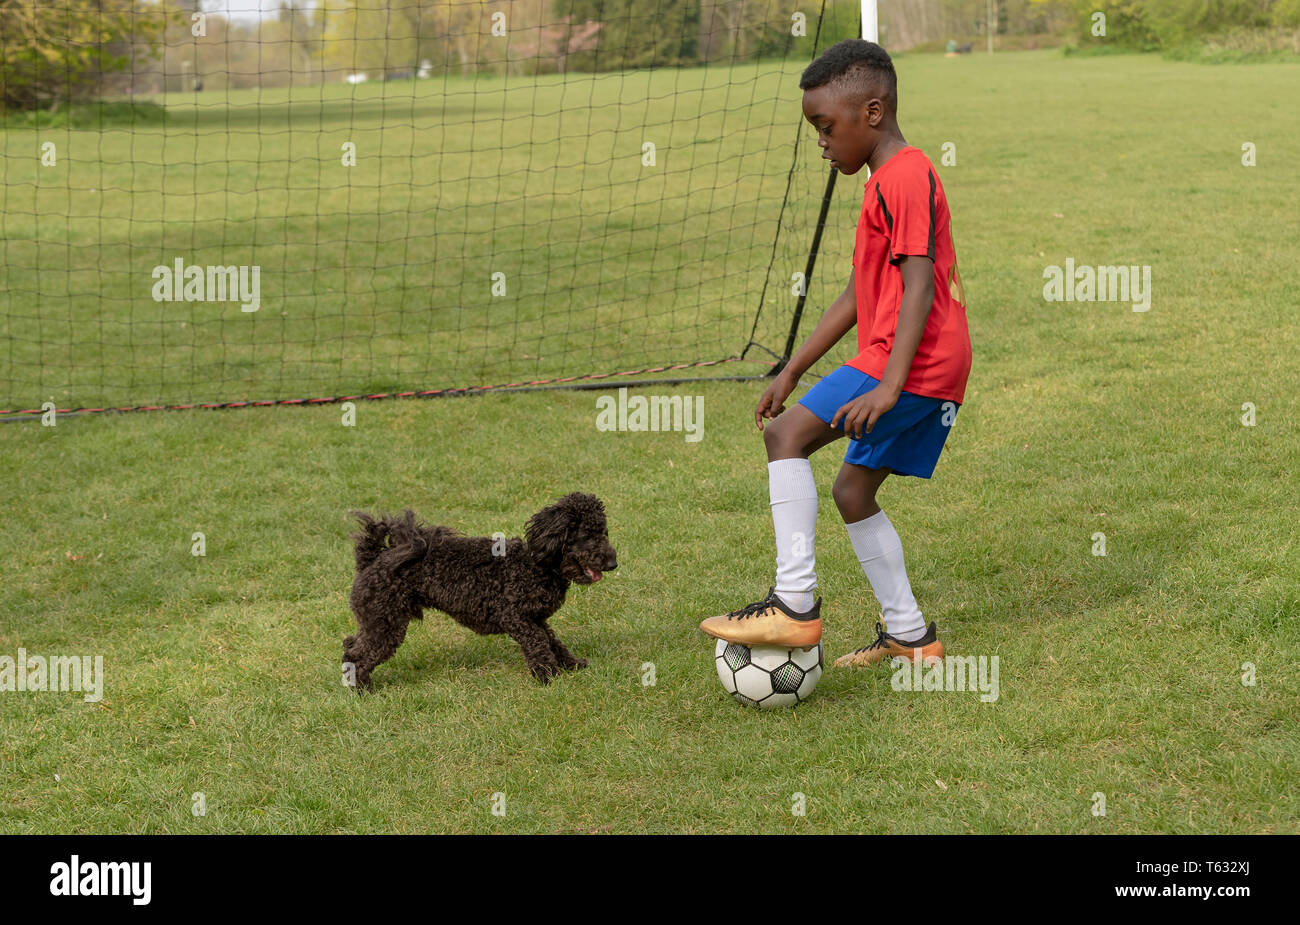 Hampshire, England, UK. April 2019. A young football player defending the goal during a traning session with his pet dog in a public park. - Stock Image